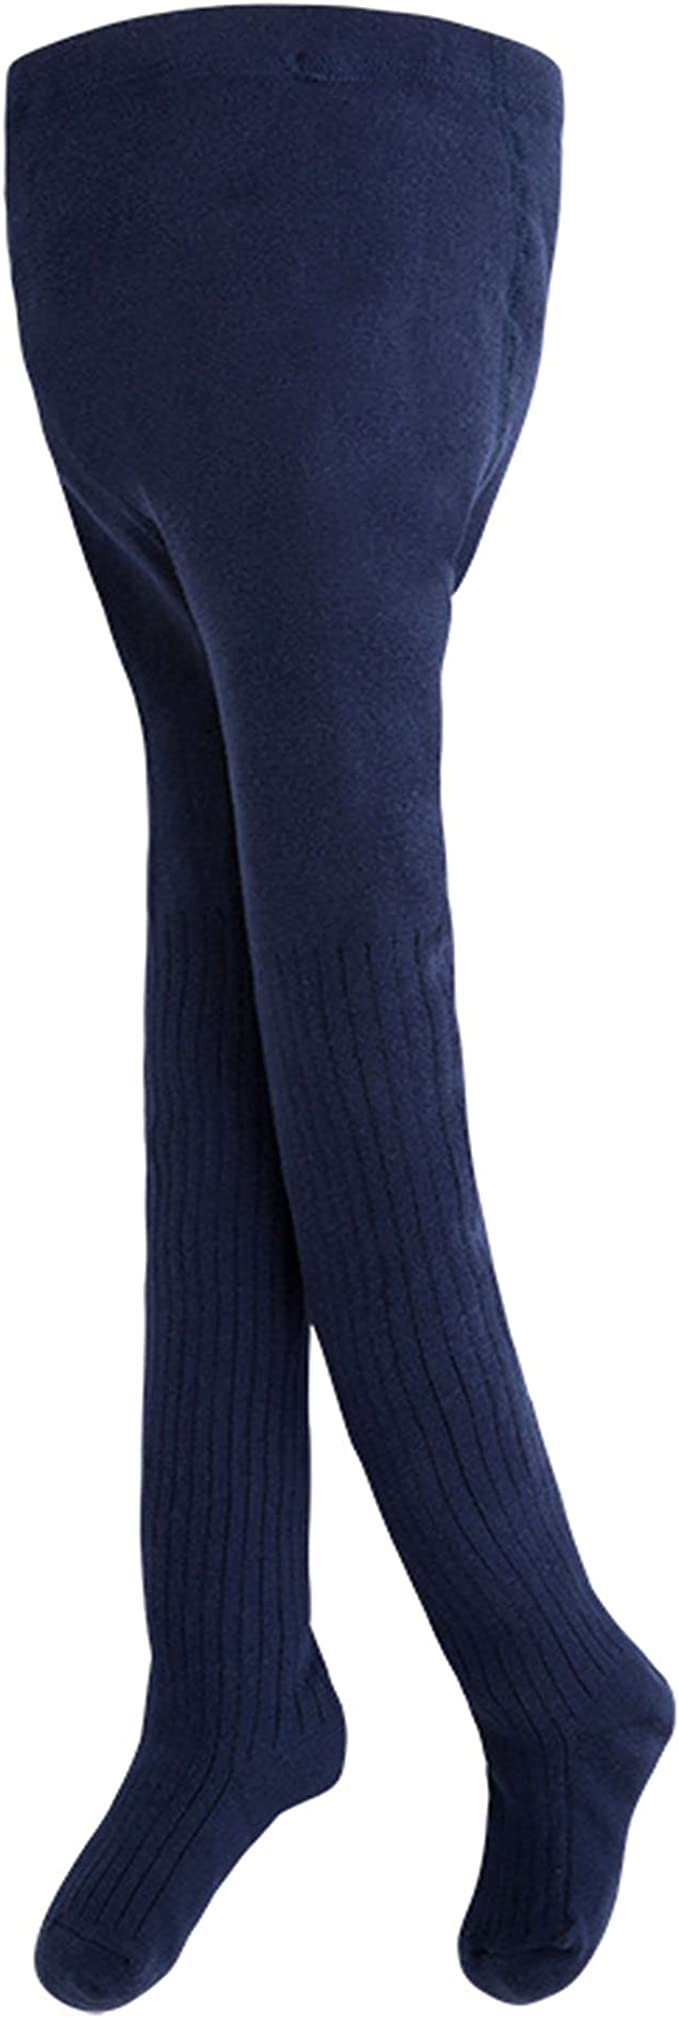 Mayoral Girls Navy Striped Open Knit Tights Sizes 2-9